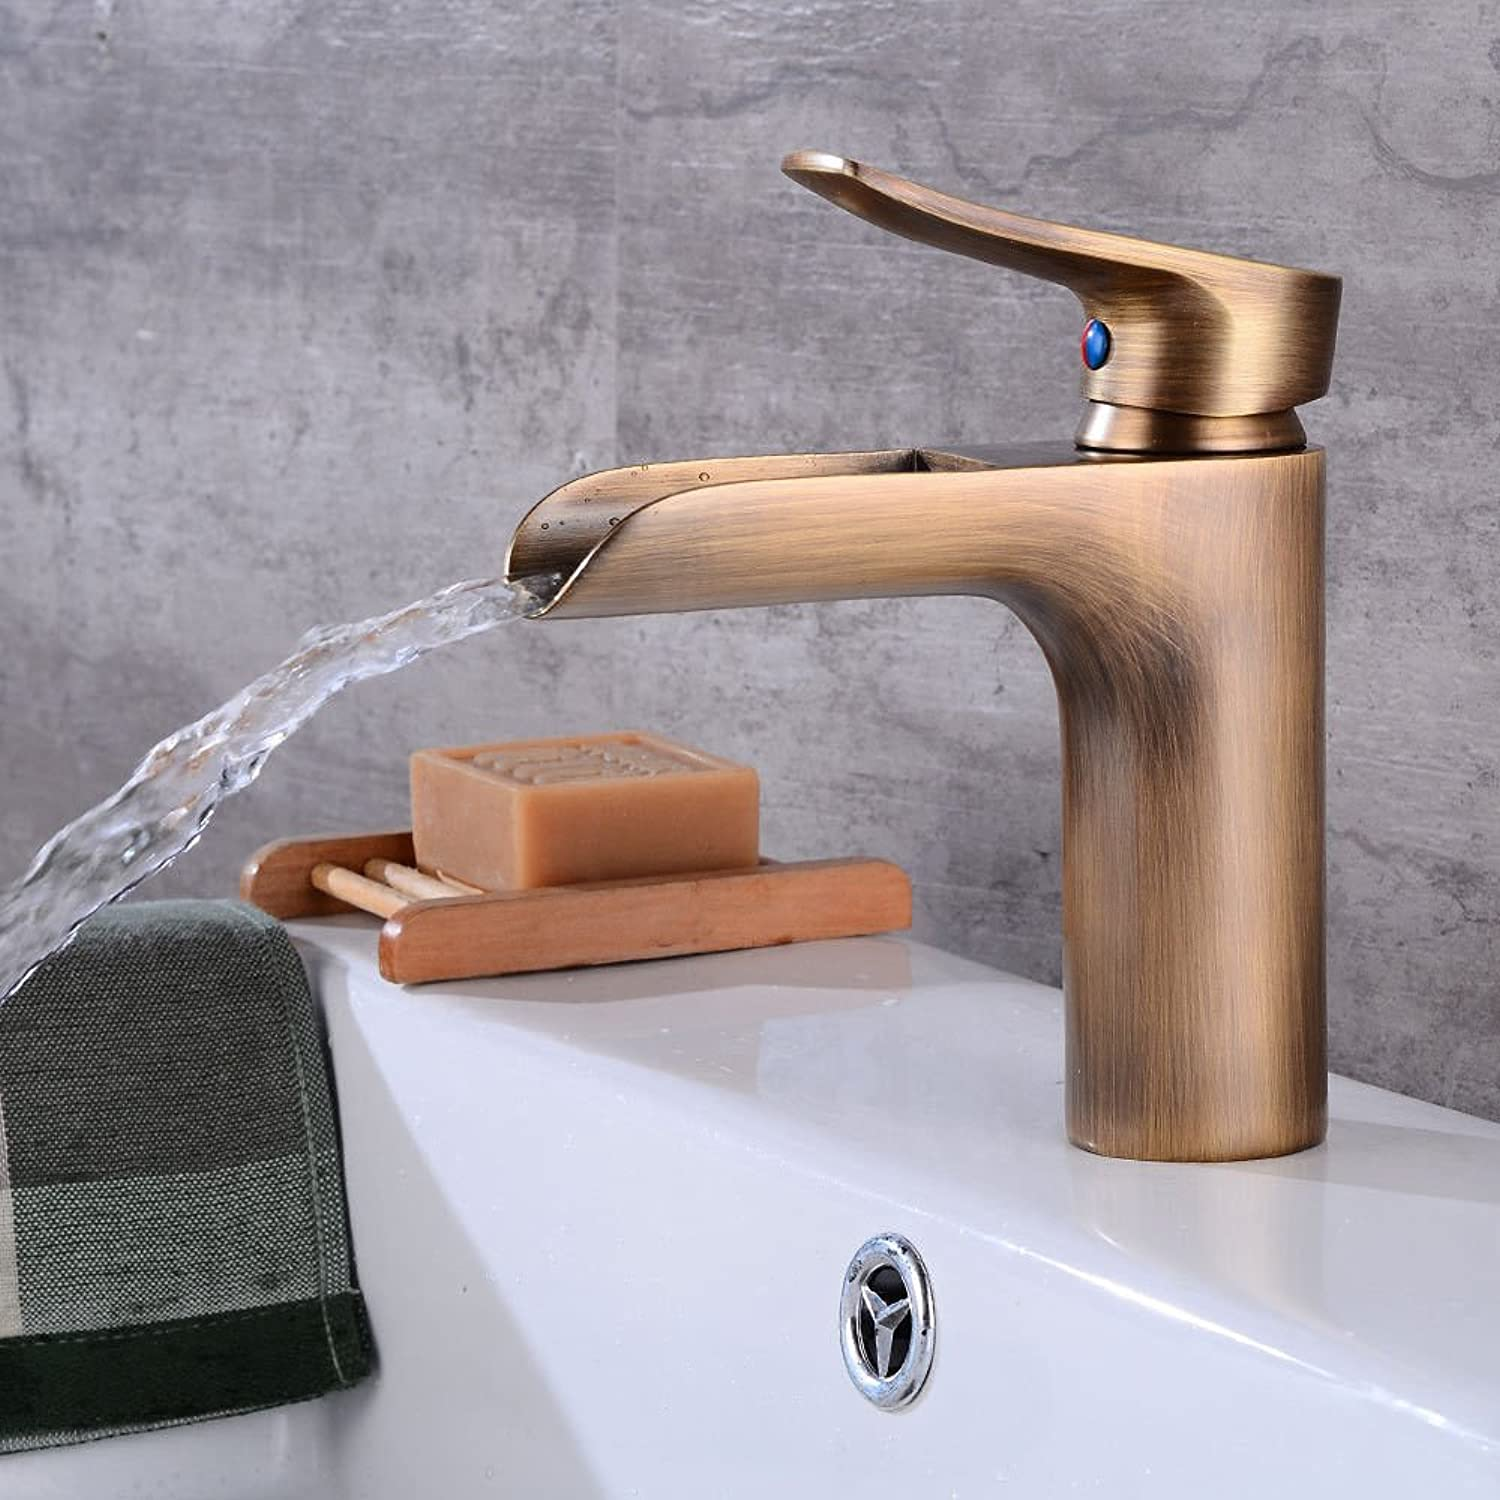 ETERNAL QUALITY Bathroom Sink Basin Tap Brass Mixer Tap Washroom Mixer Faucet On the tub faucet waterfall bathroom faucet hot and cold retro single hole Single Handle Fau